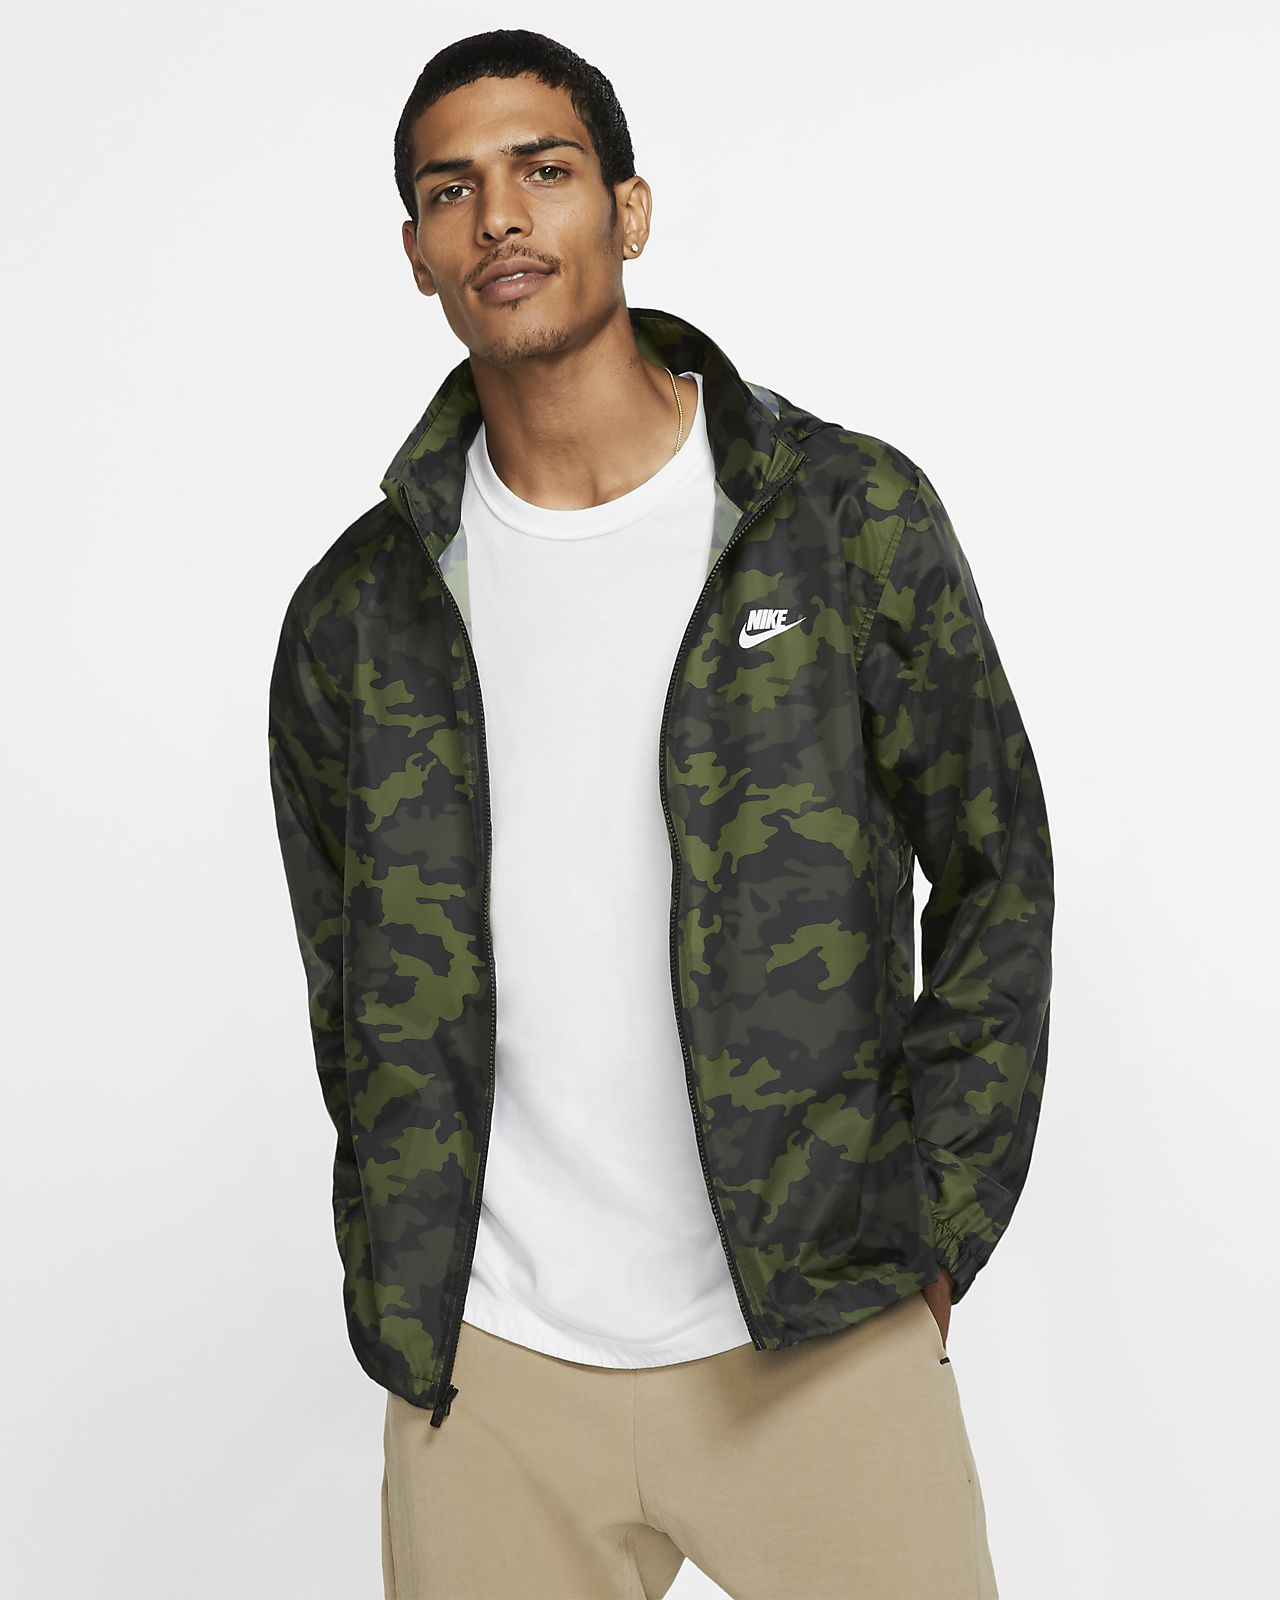 Nike Sportswear Men's Hooded Camo Jacket